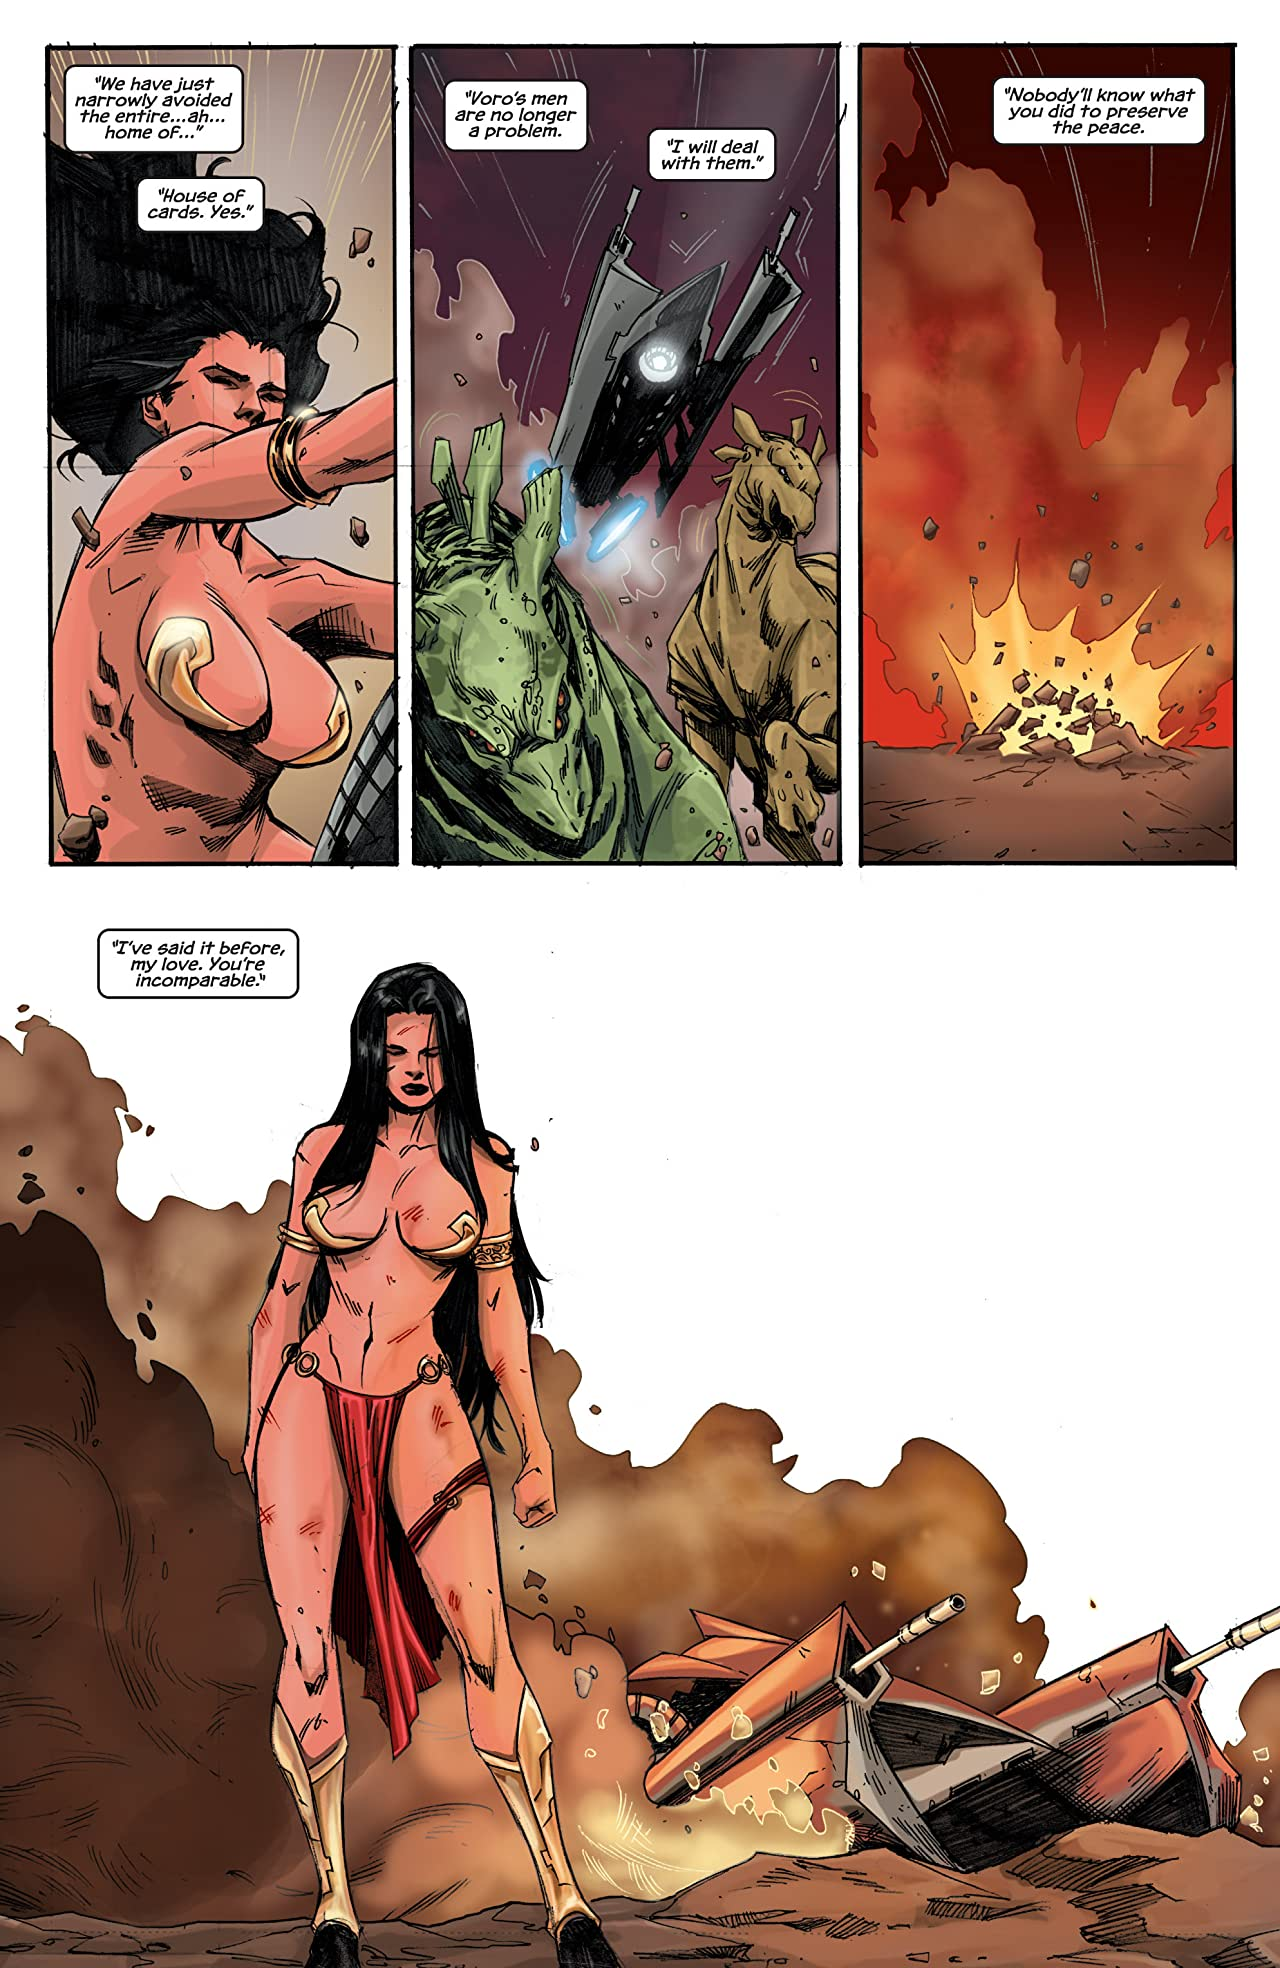 Dejah Thoris and the Green Men of Mars #9 (of 12)